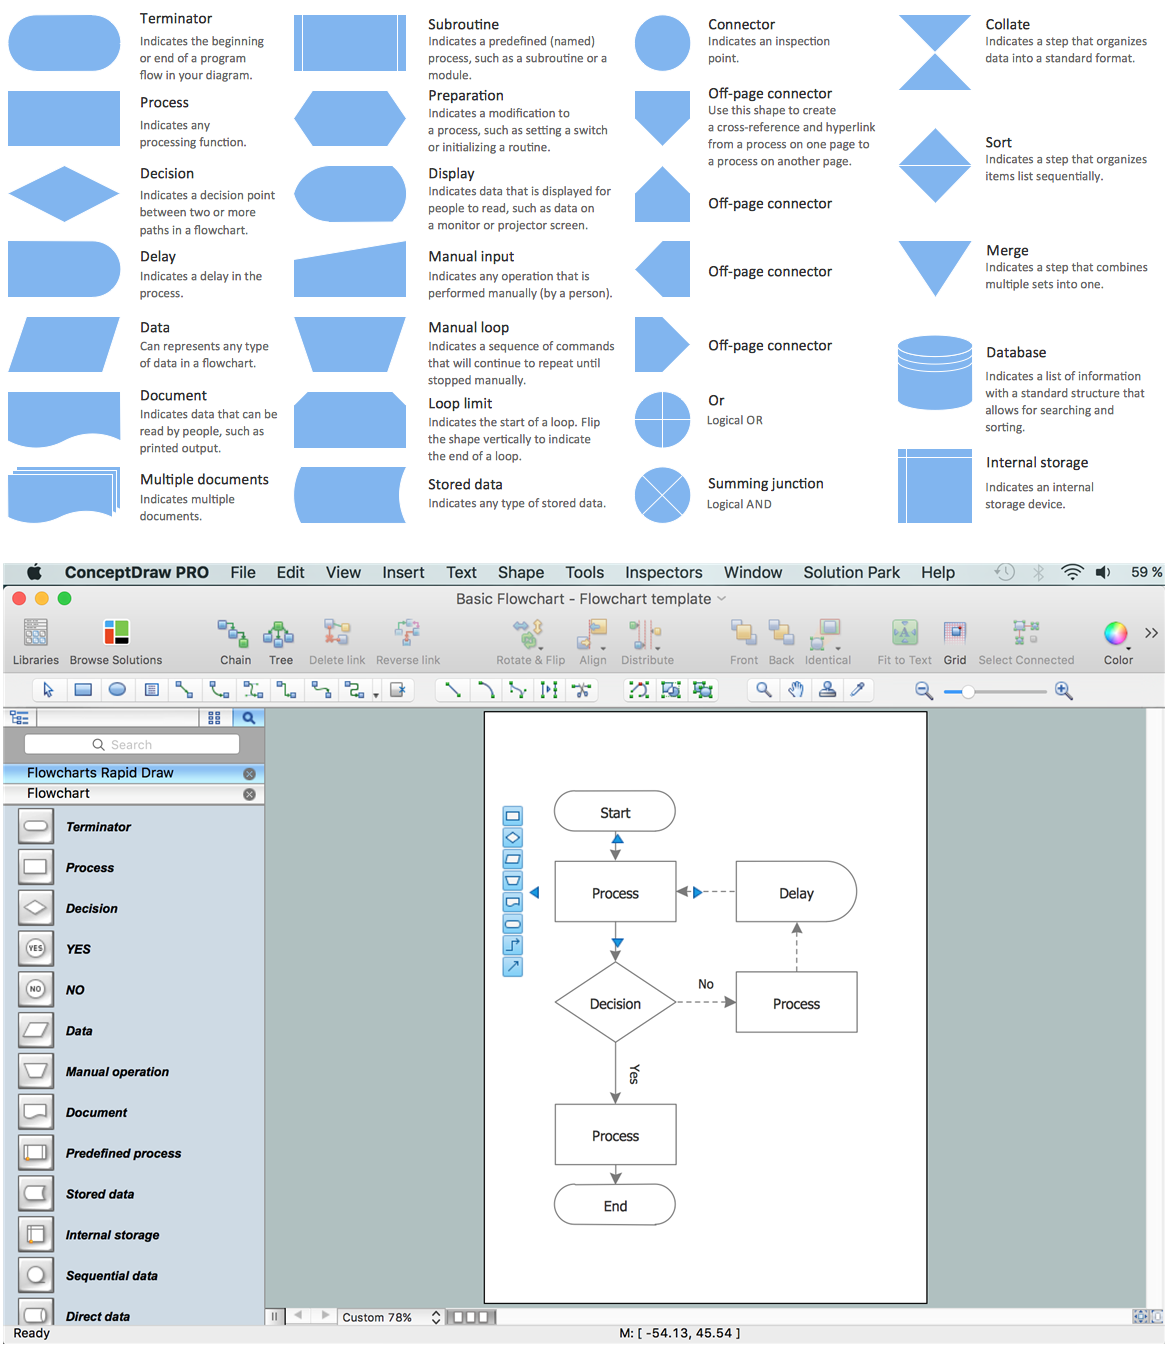 Basic Flowchart Examples Create Flowcharts Diagrams Business Block Diagram In Visio Icons Symbols And Template